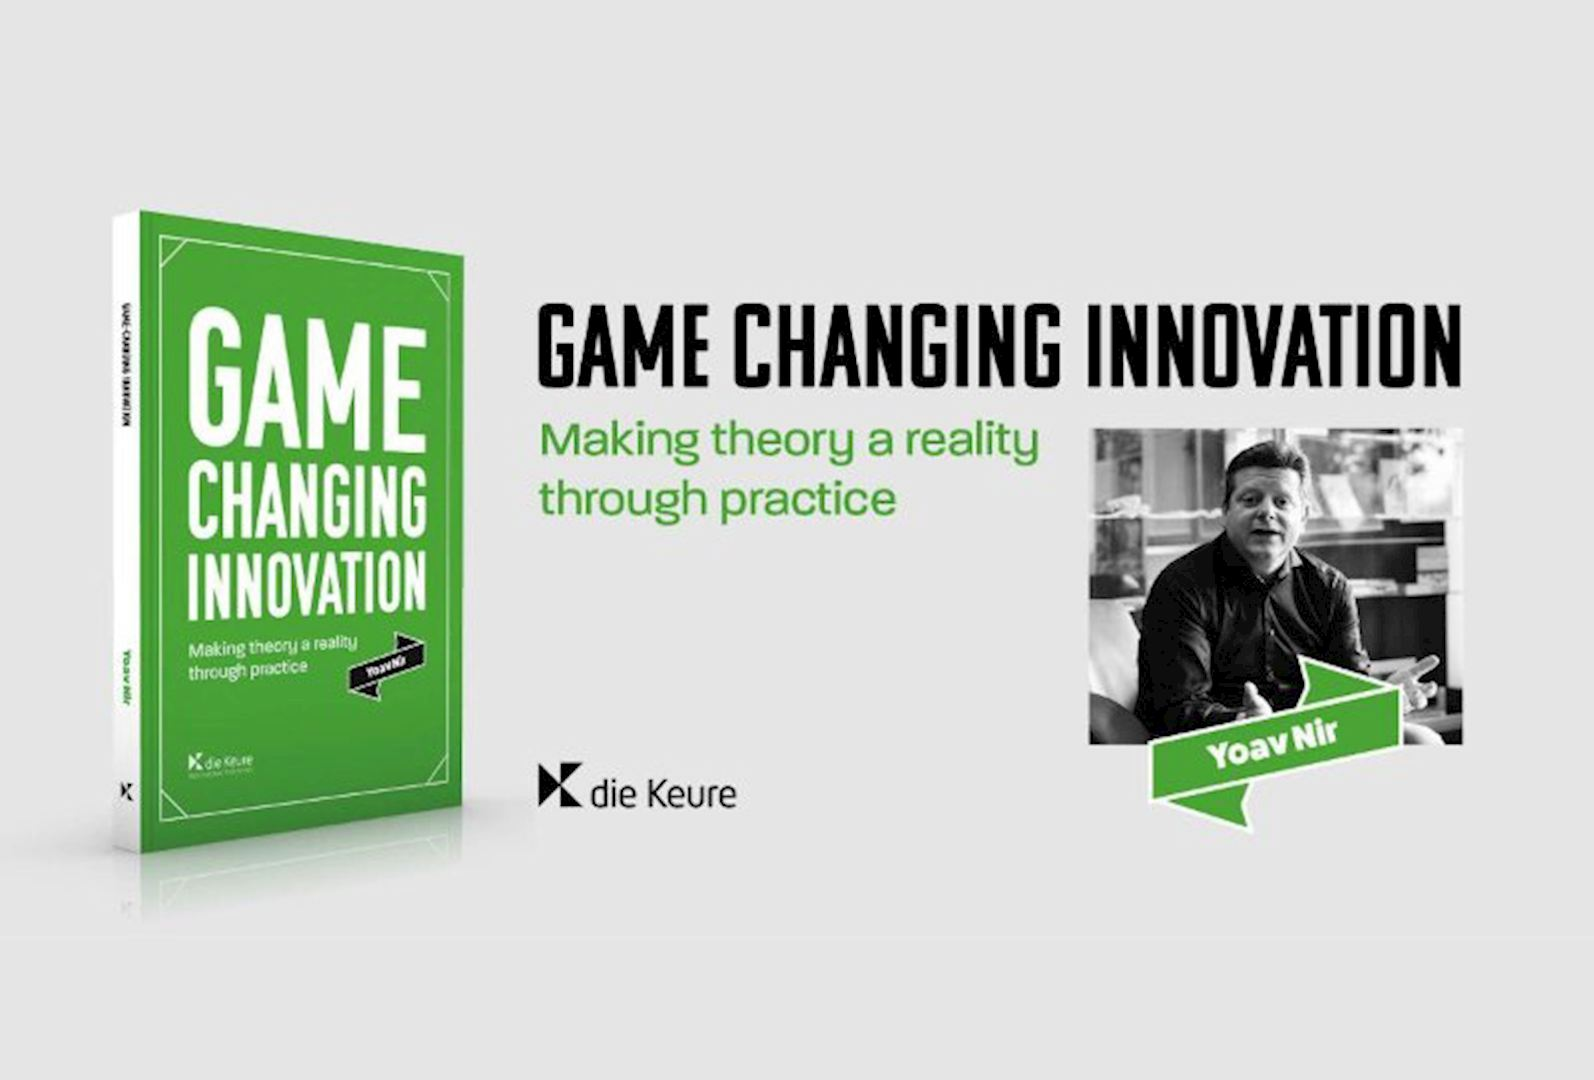 Game-Changing Innovation par Yoav Nir